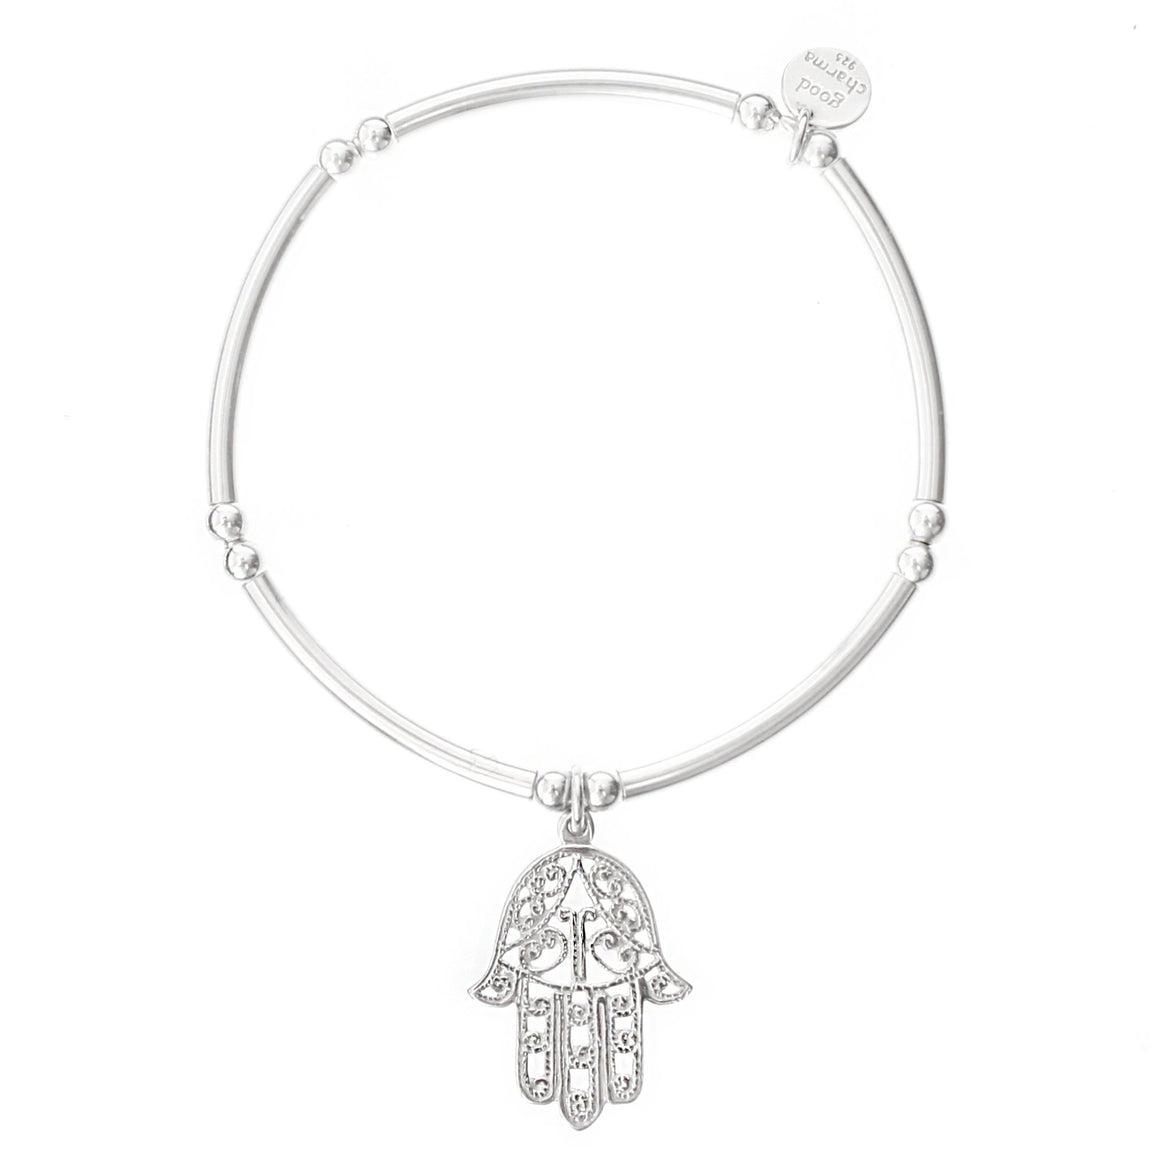 Hamsa Bangle Bracelet - good charma